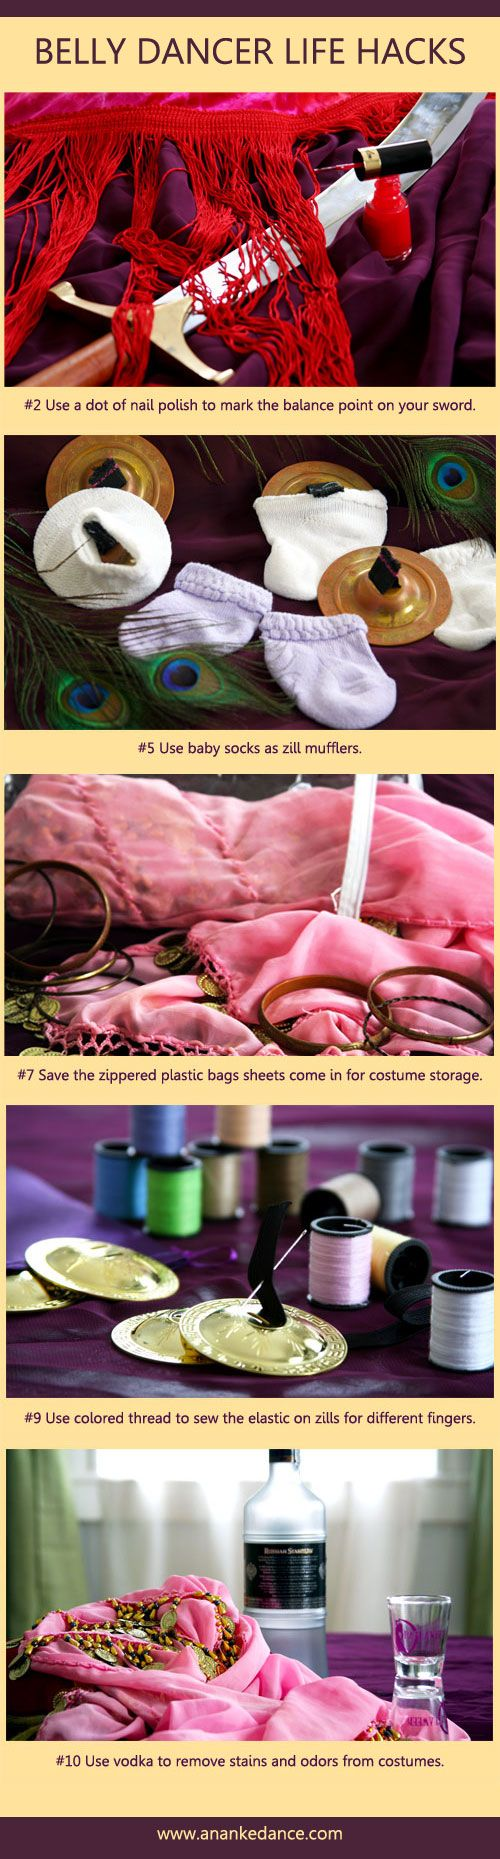 Did you know that you can use different colored thread when sewing the elastic o